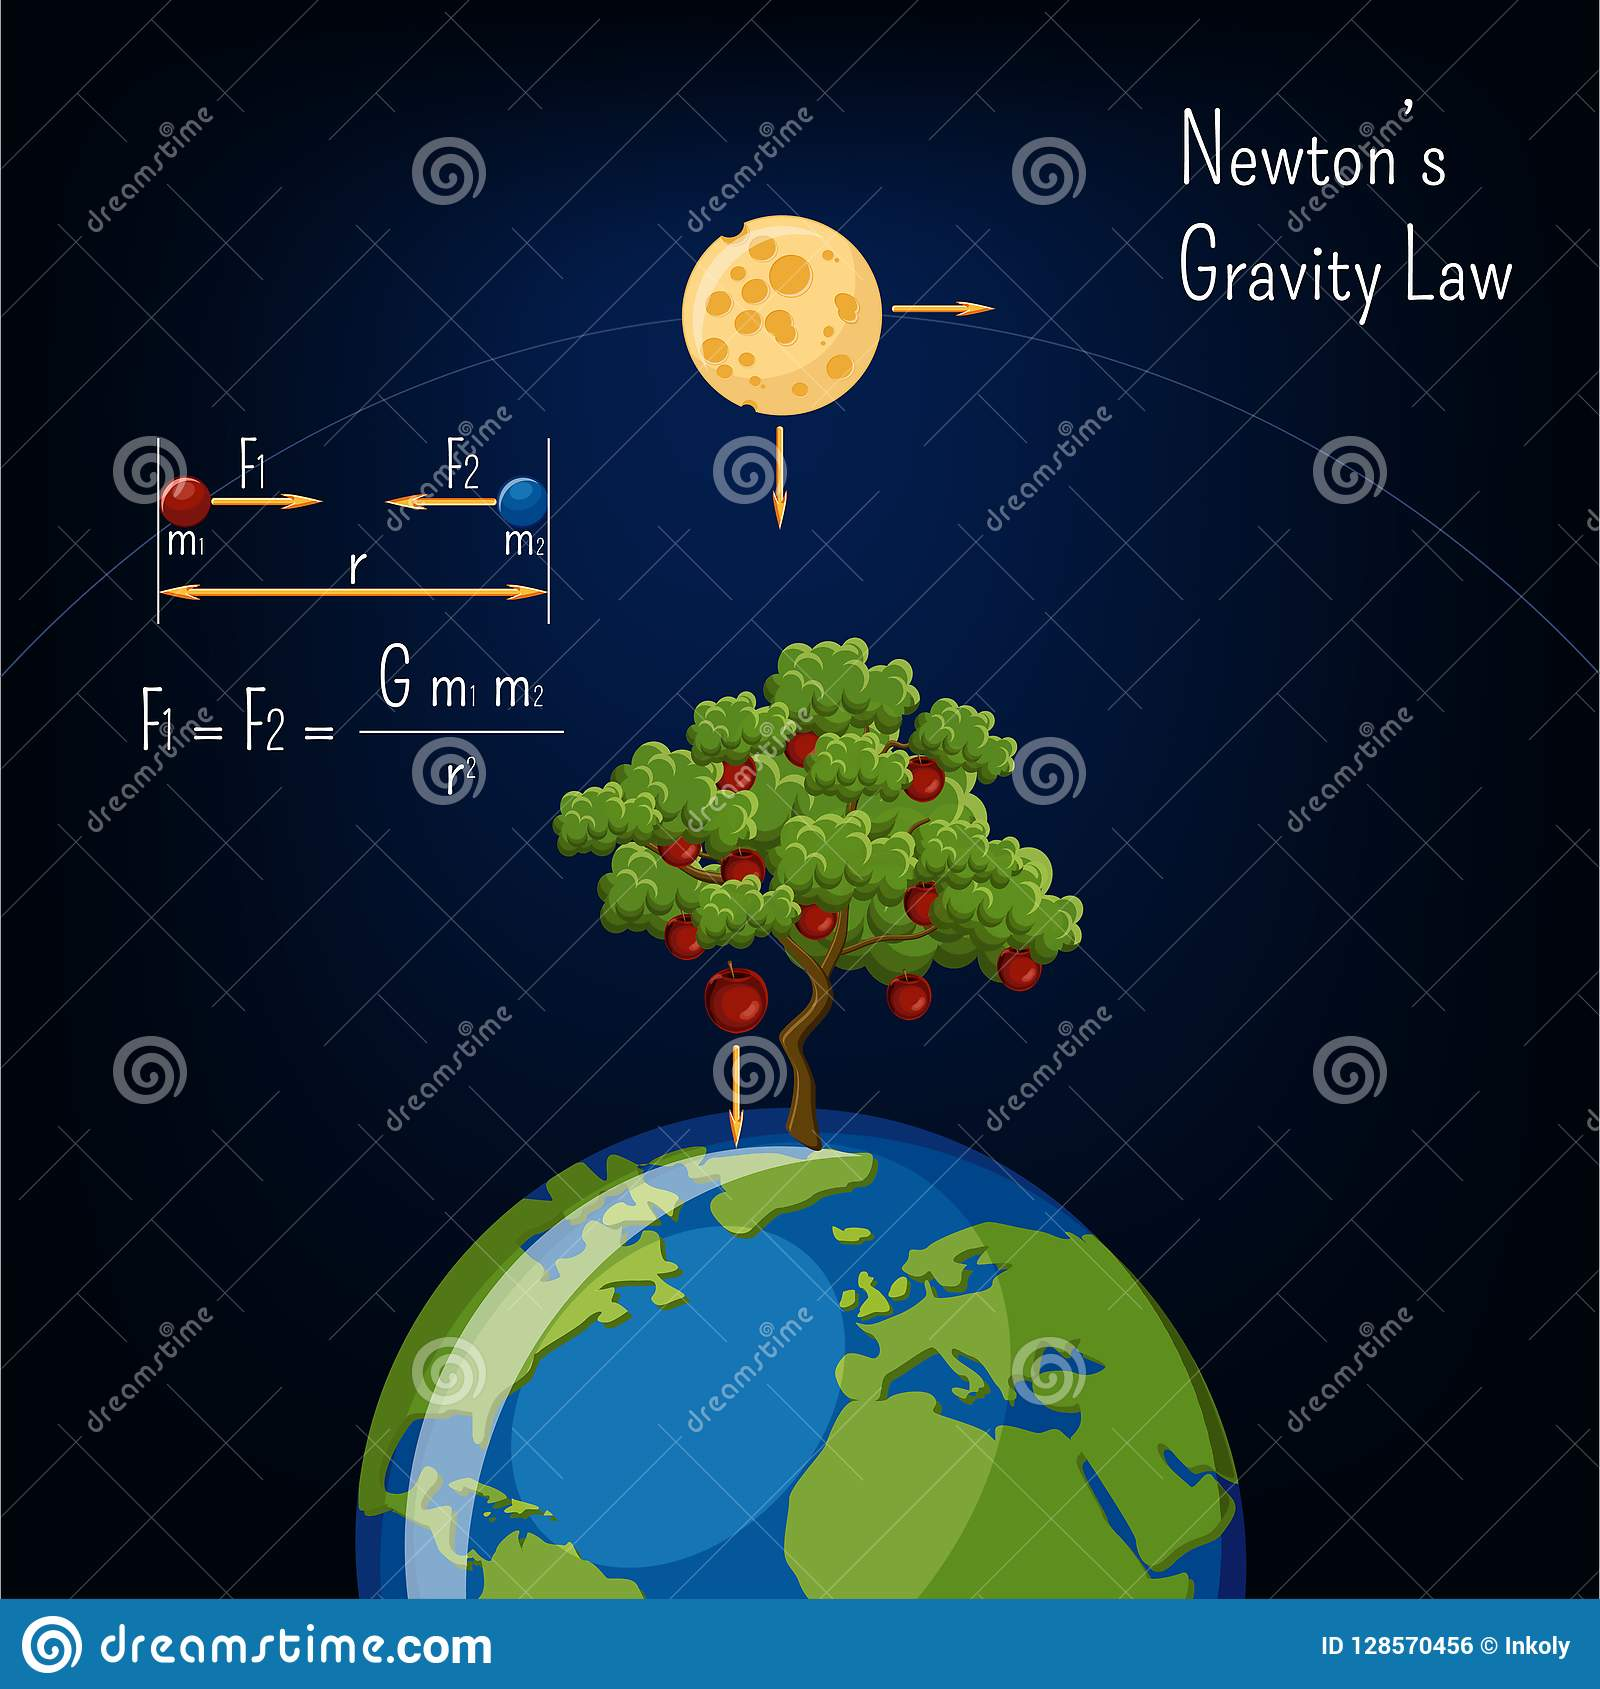 Newton S Gravity Law Infographic With Earth Globe Moon